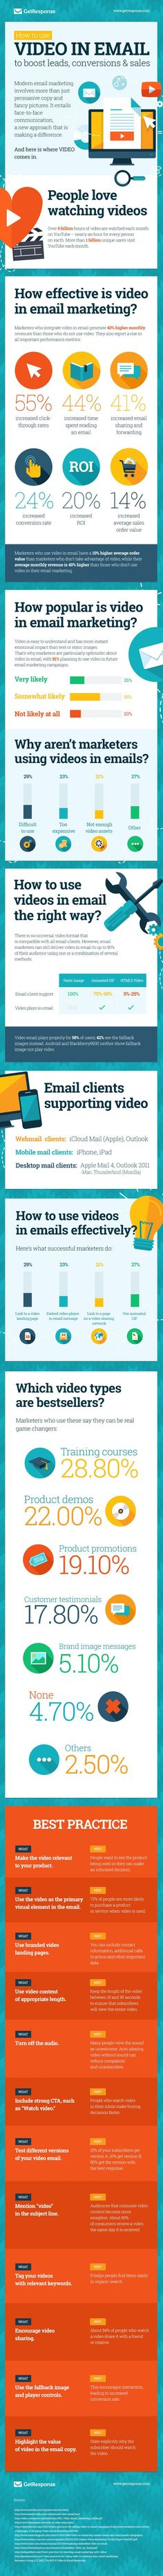 Video in Email Here is What You Need to Know   http://socialmouths.com/blog/2014/07/08/video-in-email/